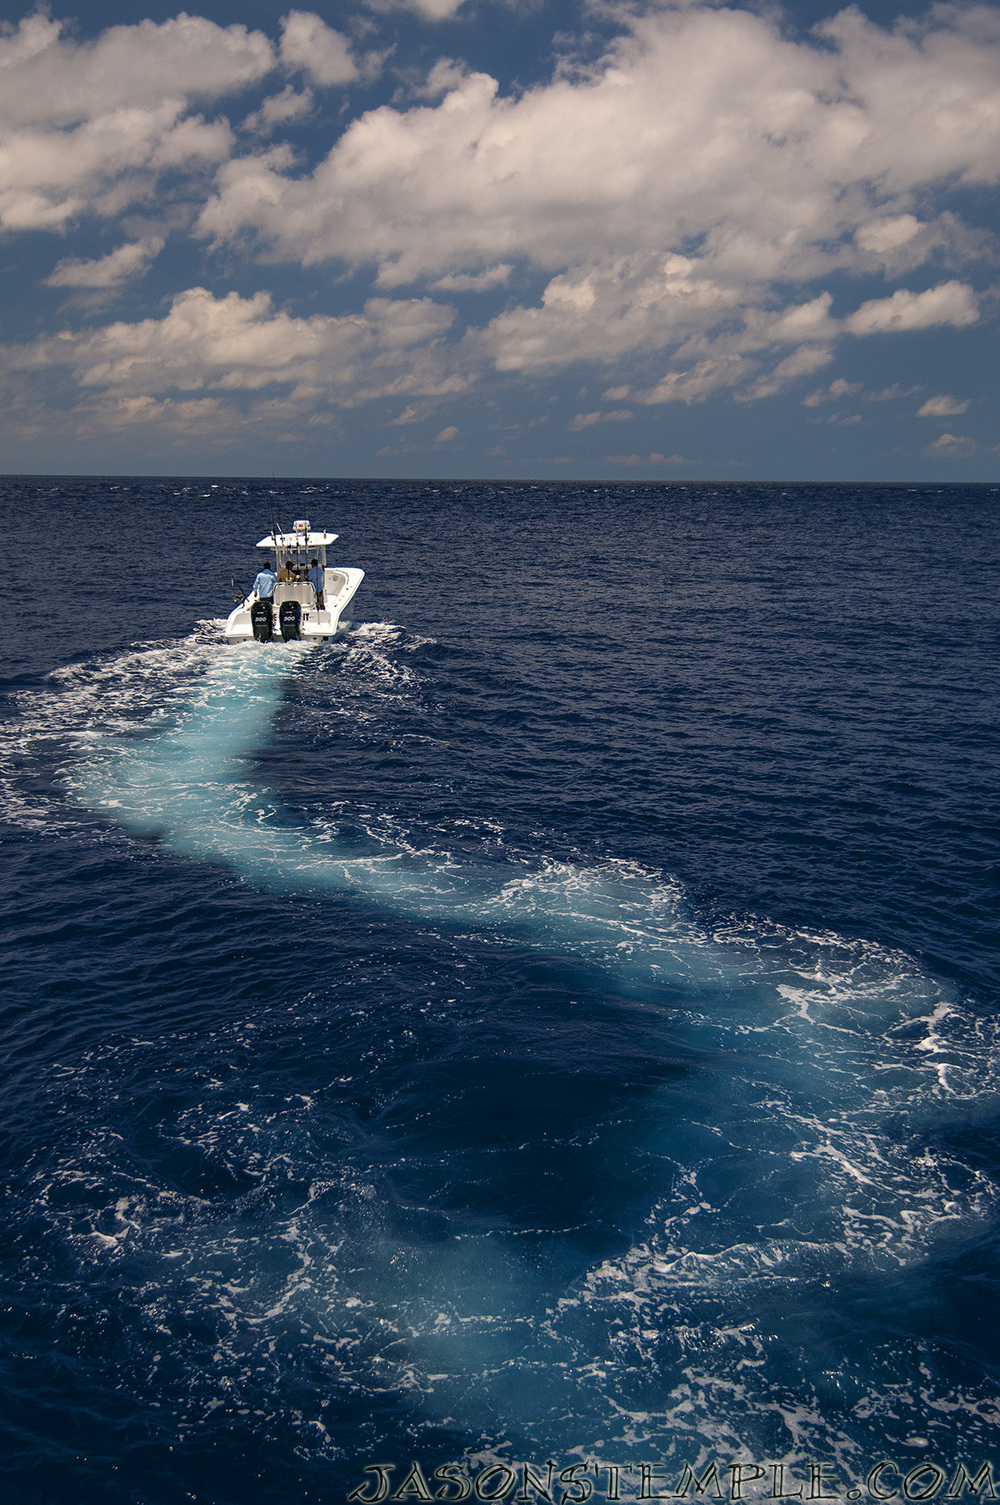 heading back to hawk's cay after a great day offshore. nikon d300s, 24mm, f/4.0, 1/2000 sec